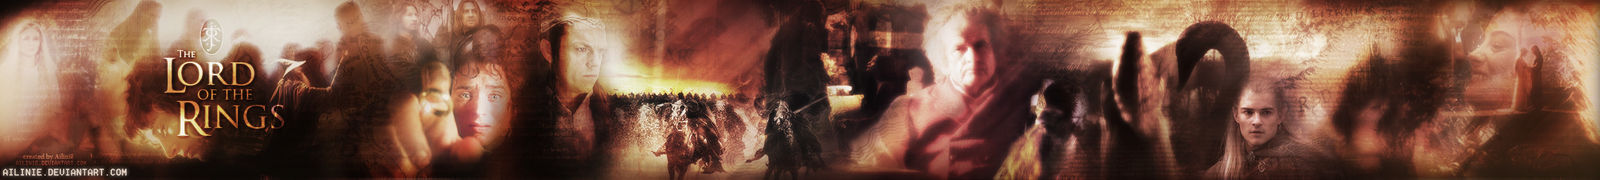 /r/LOTR - banner submission